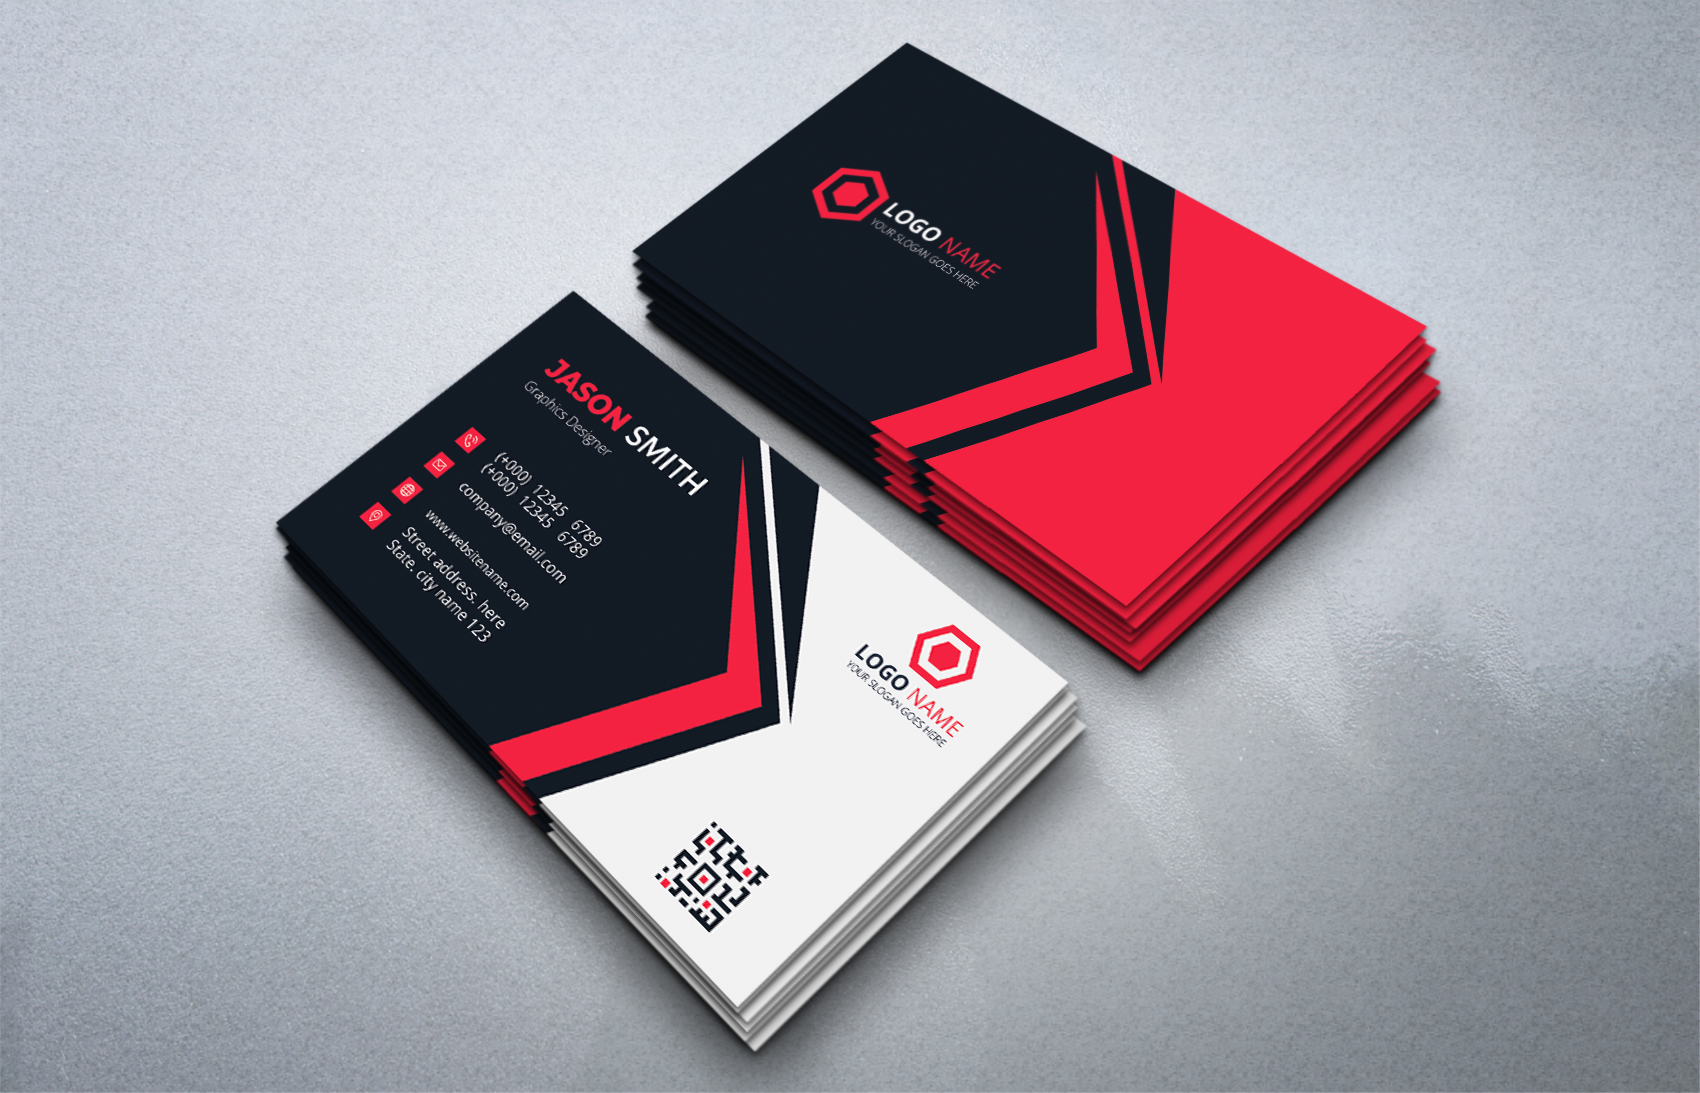 Download Free Professional Business Card Graphic By Medelwardi Creative Fabrica for Cricut Explore, Silhouette and other cutting machines.